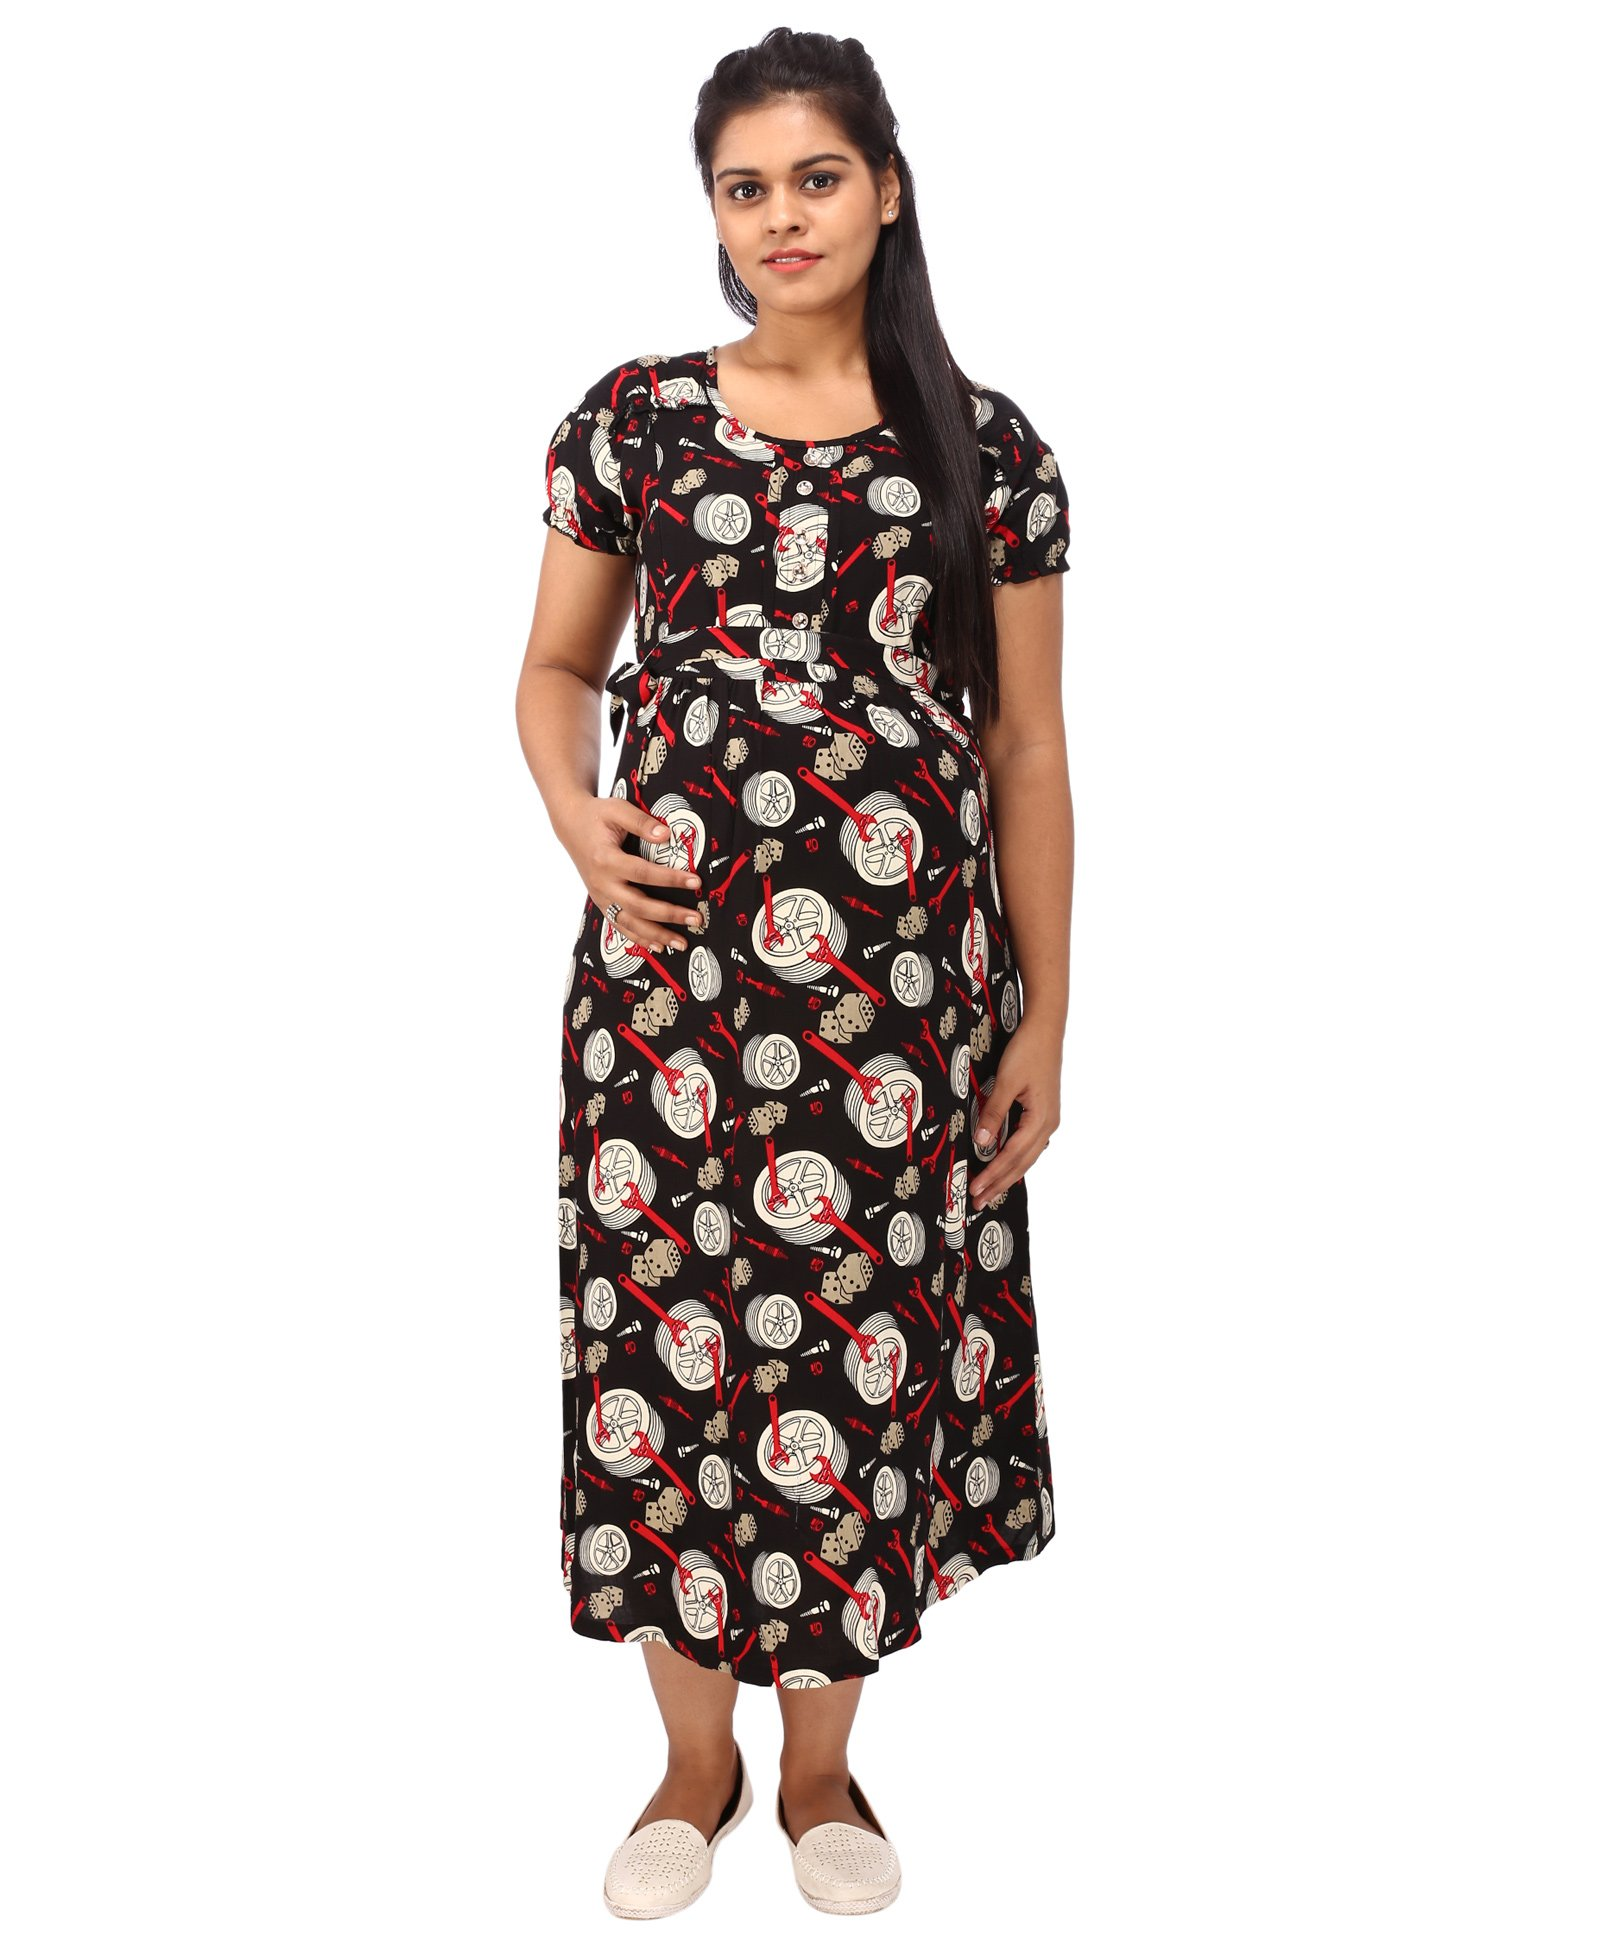 46d63c1386a8c Mammas Maternity Short Sleeves Dress Printed Black Online in India ...